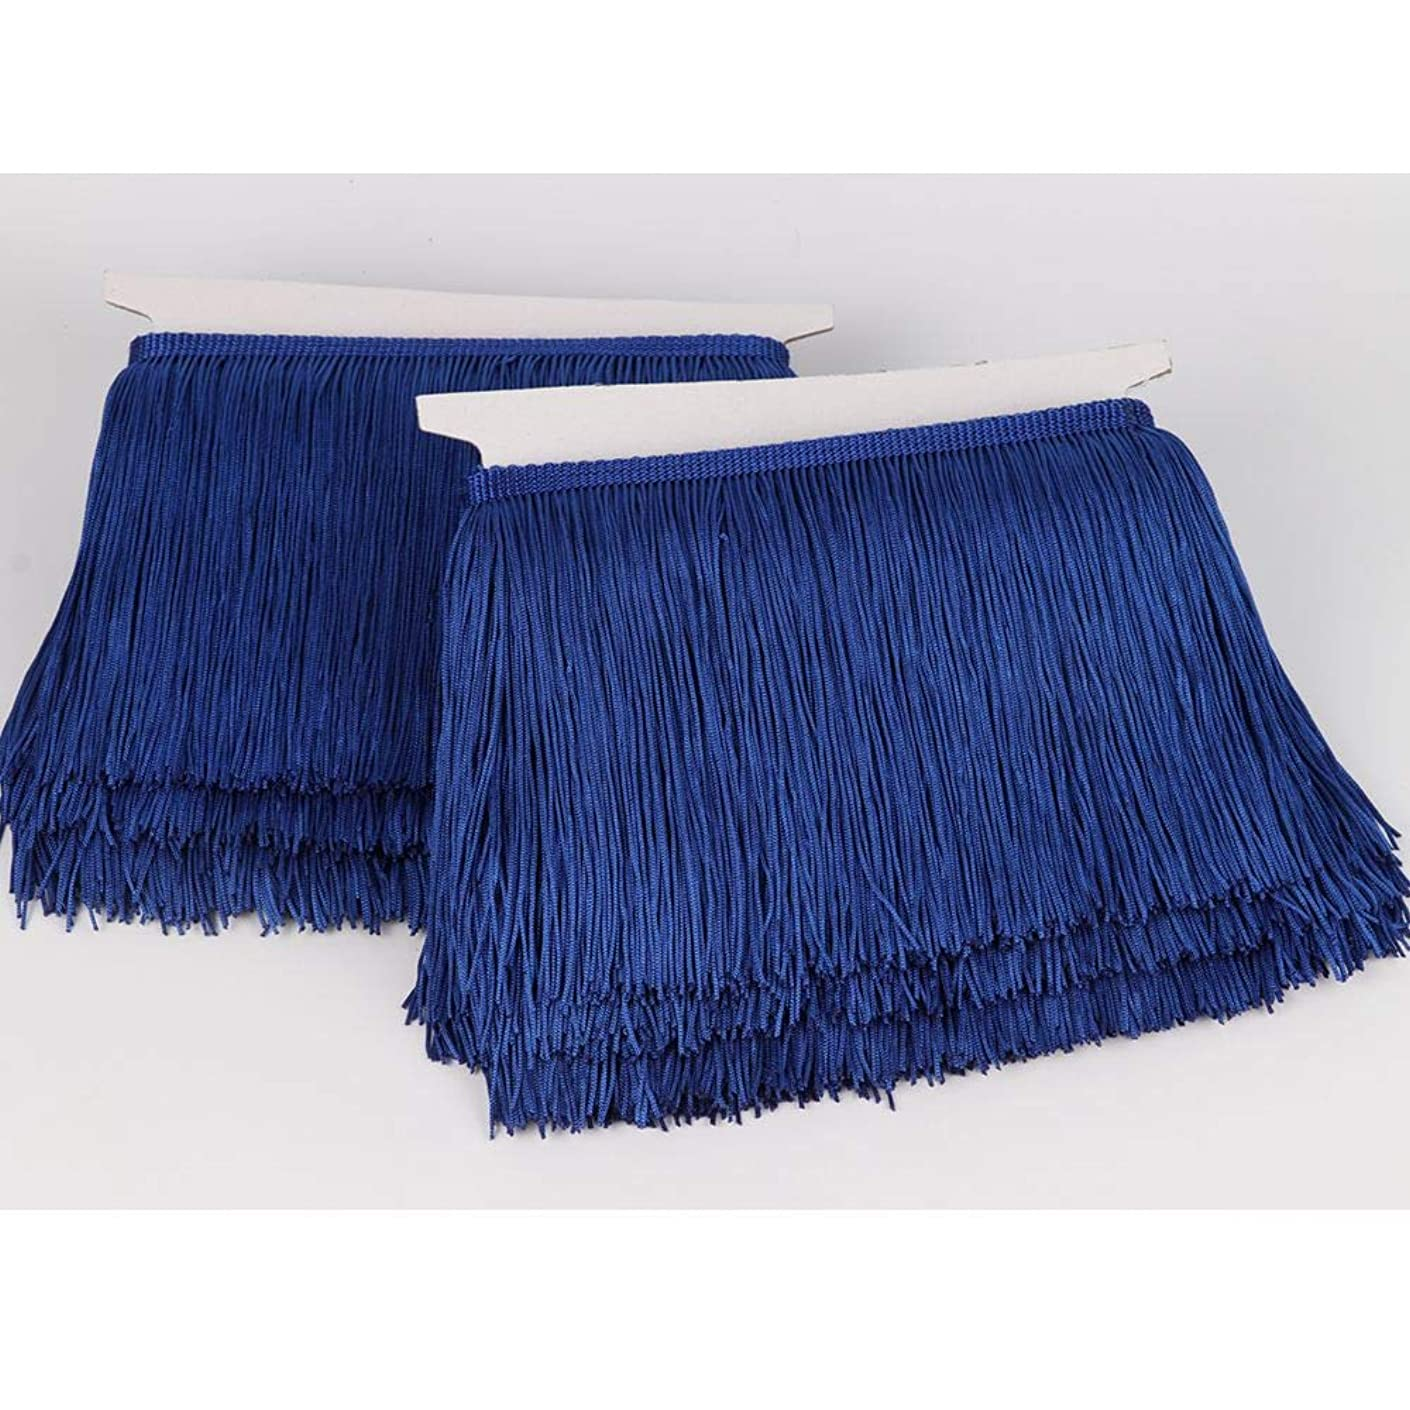 Heartwish268 Fringe Trim Lace Polyerter Fibre Tassel 6inch Wide 10 Yards Long for Clothes Accessories Latin Wedding Dress DIY Lamp Shade Decoration Black White Red(Royal Blue)